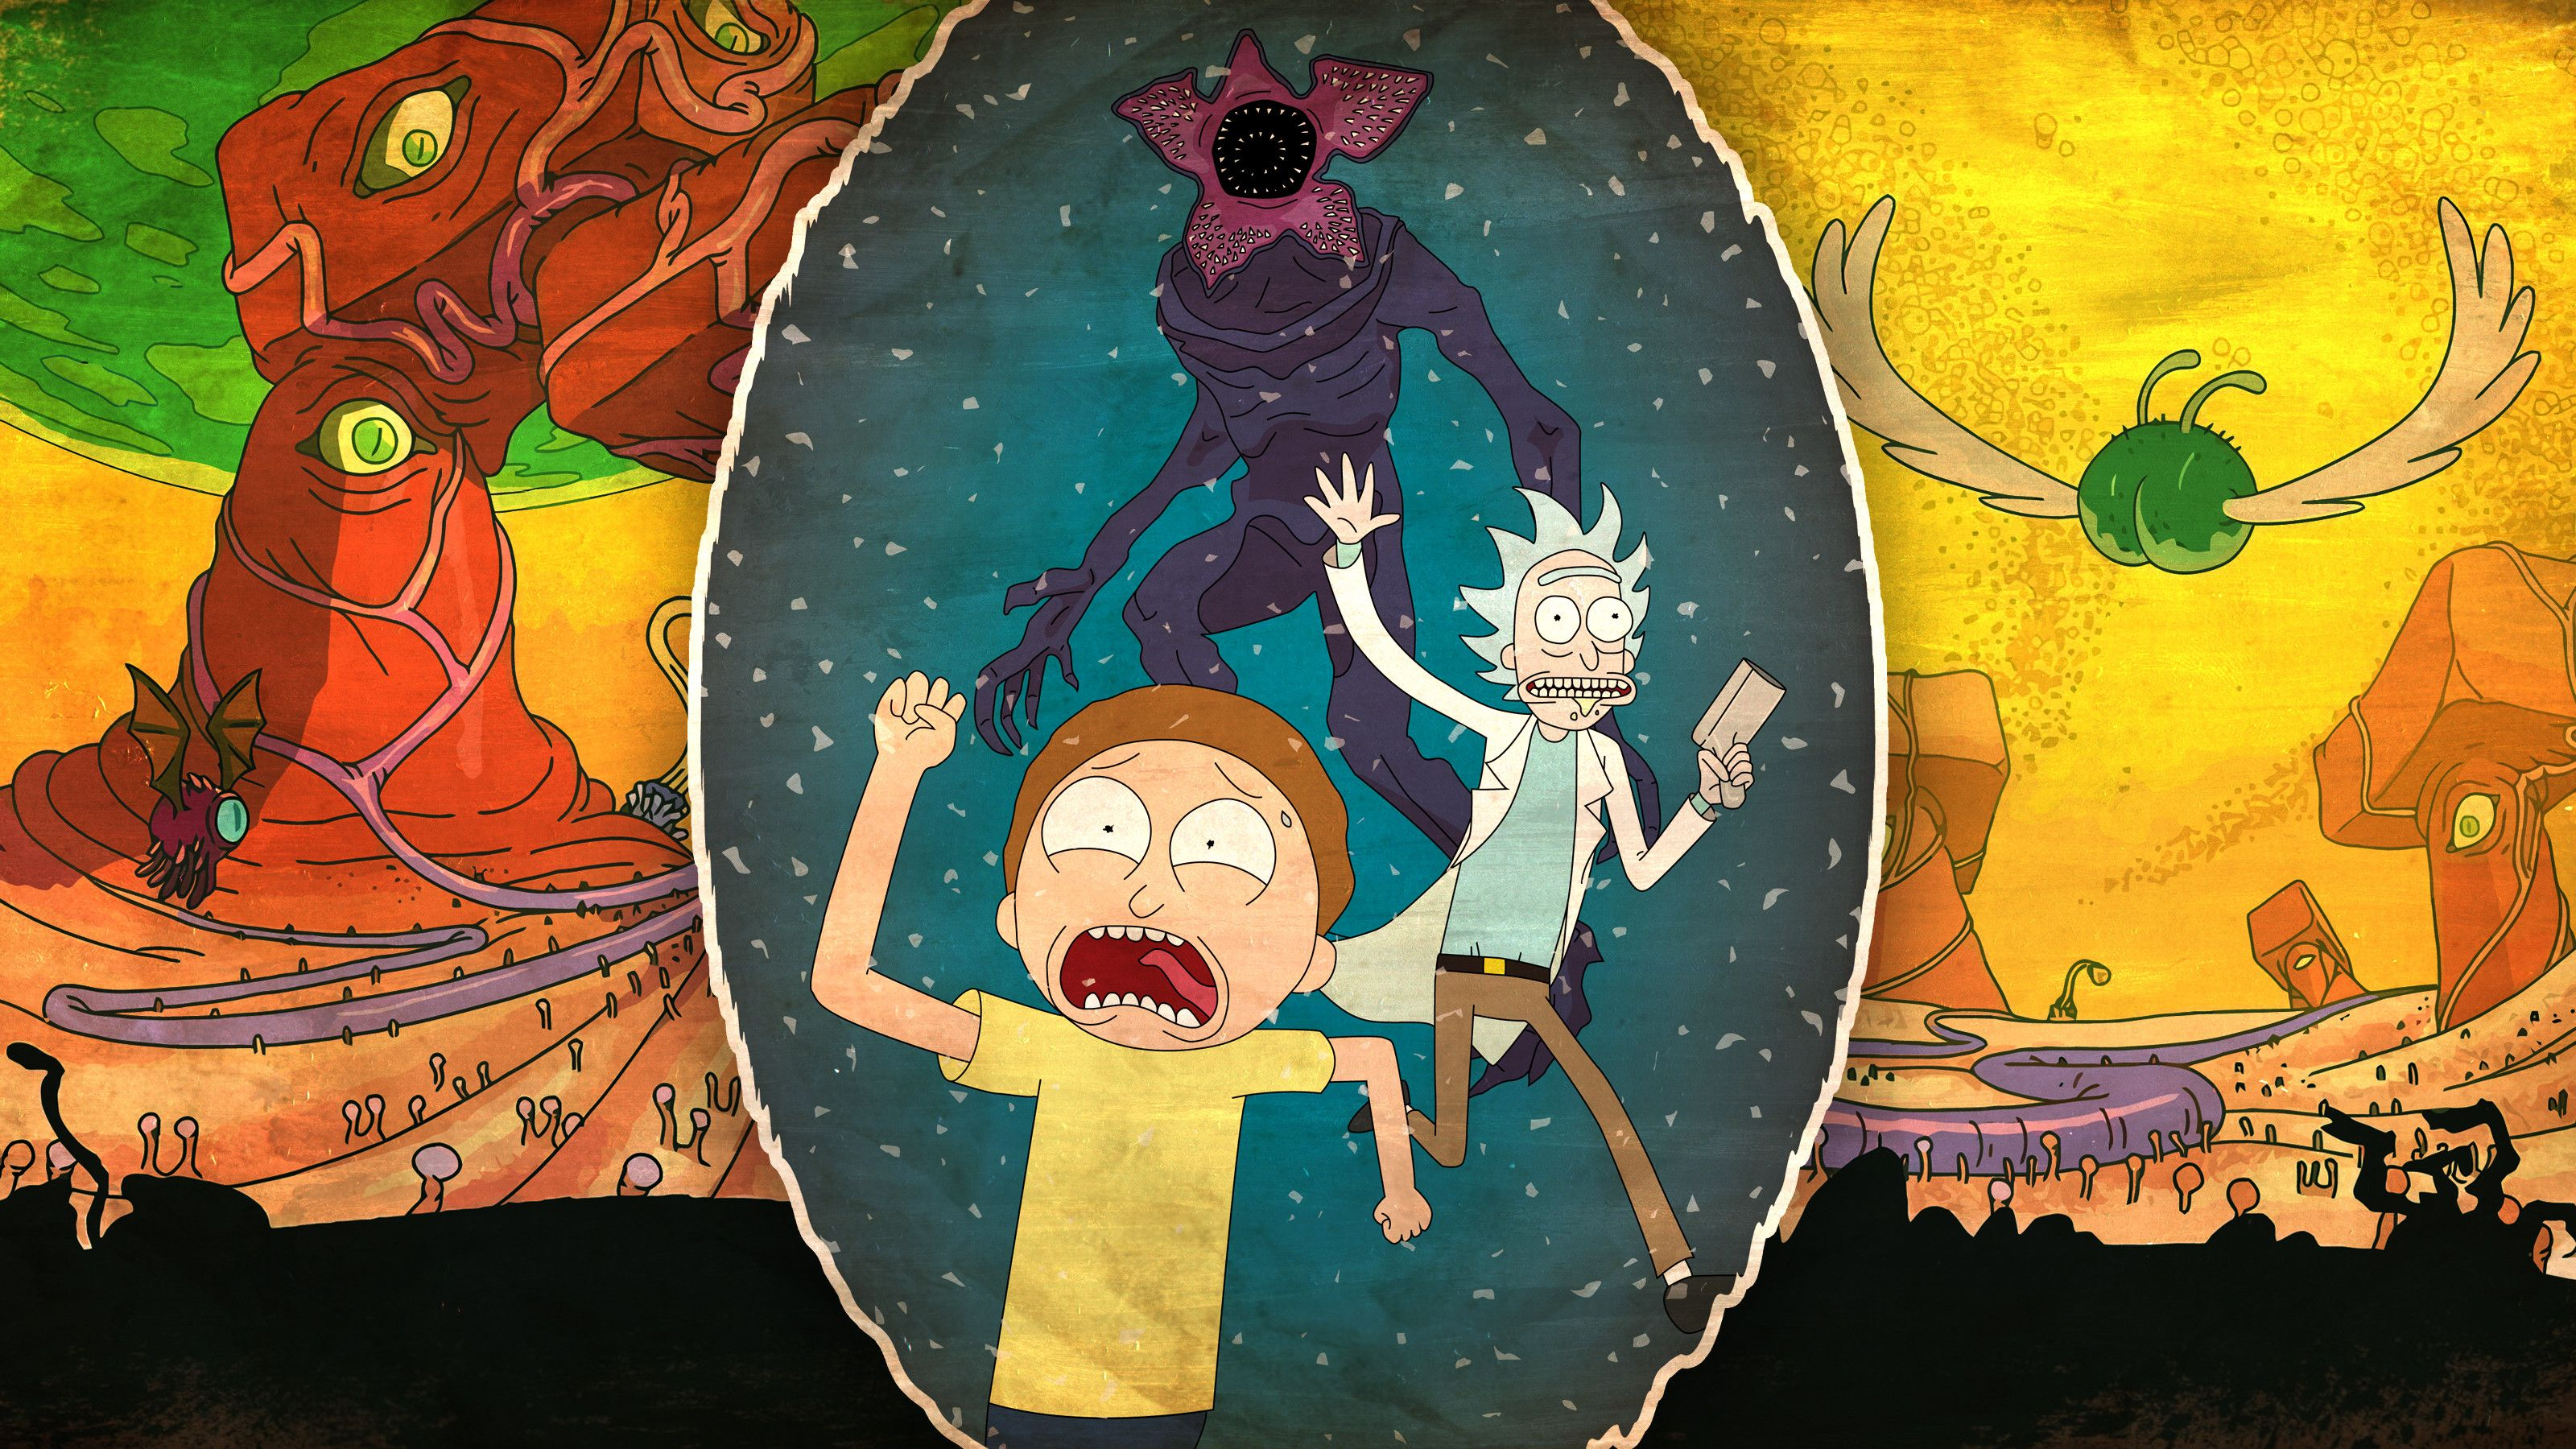 Rick And Morty 4k, HD Cartoons, 4k Wallpapers, Images, Backgrounds .